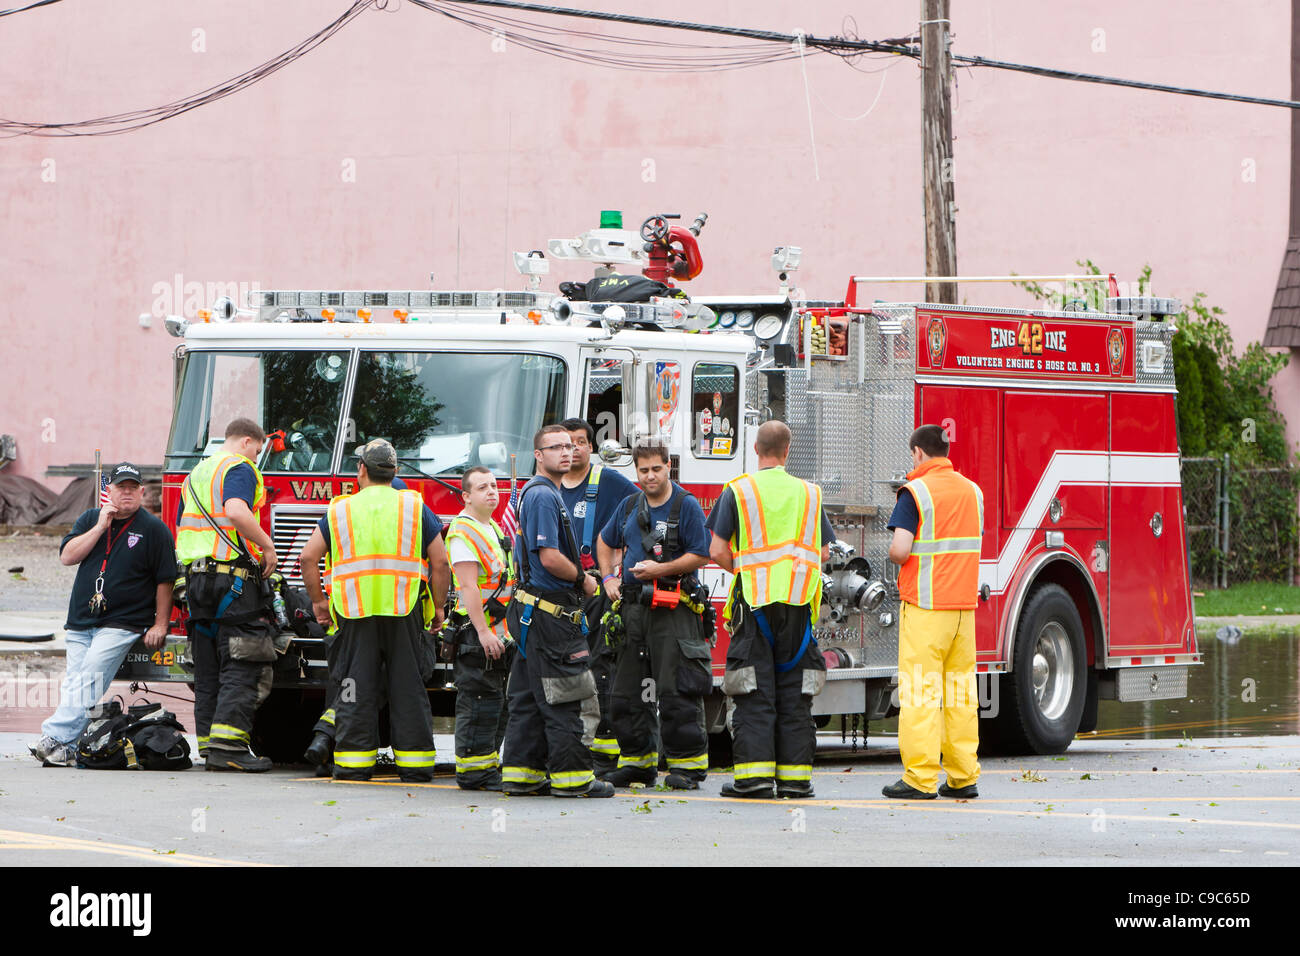 Members of the local Volunteer Fire Department, ready to assist with any emergencies, in the aftermath of Hurricane - Stock Image